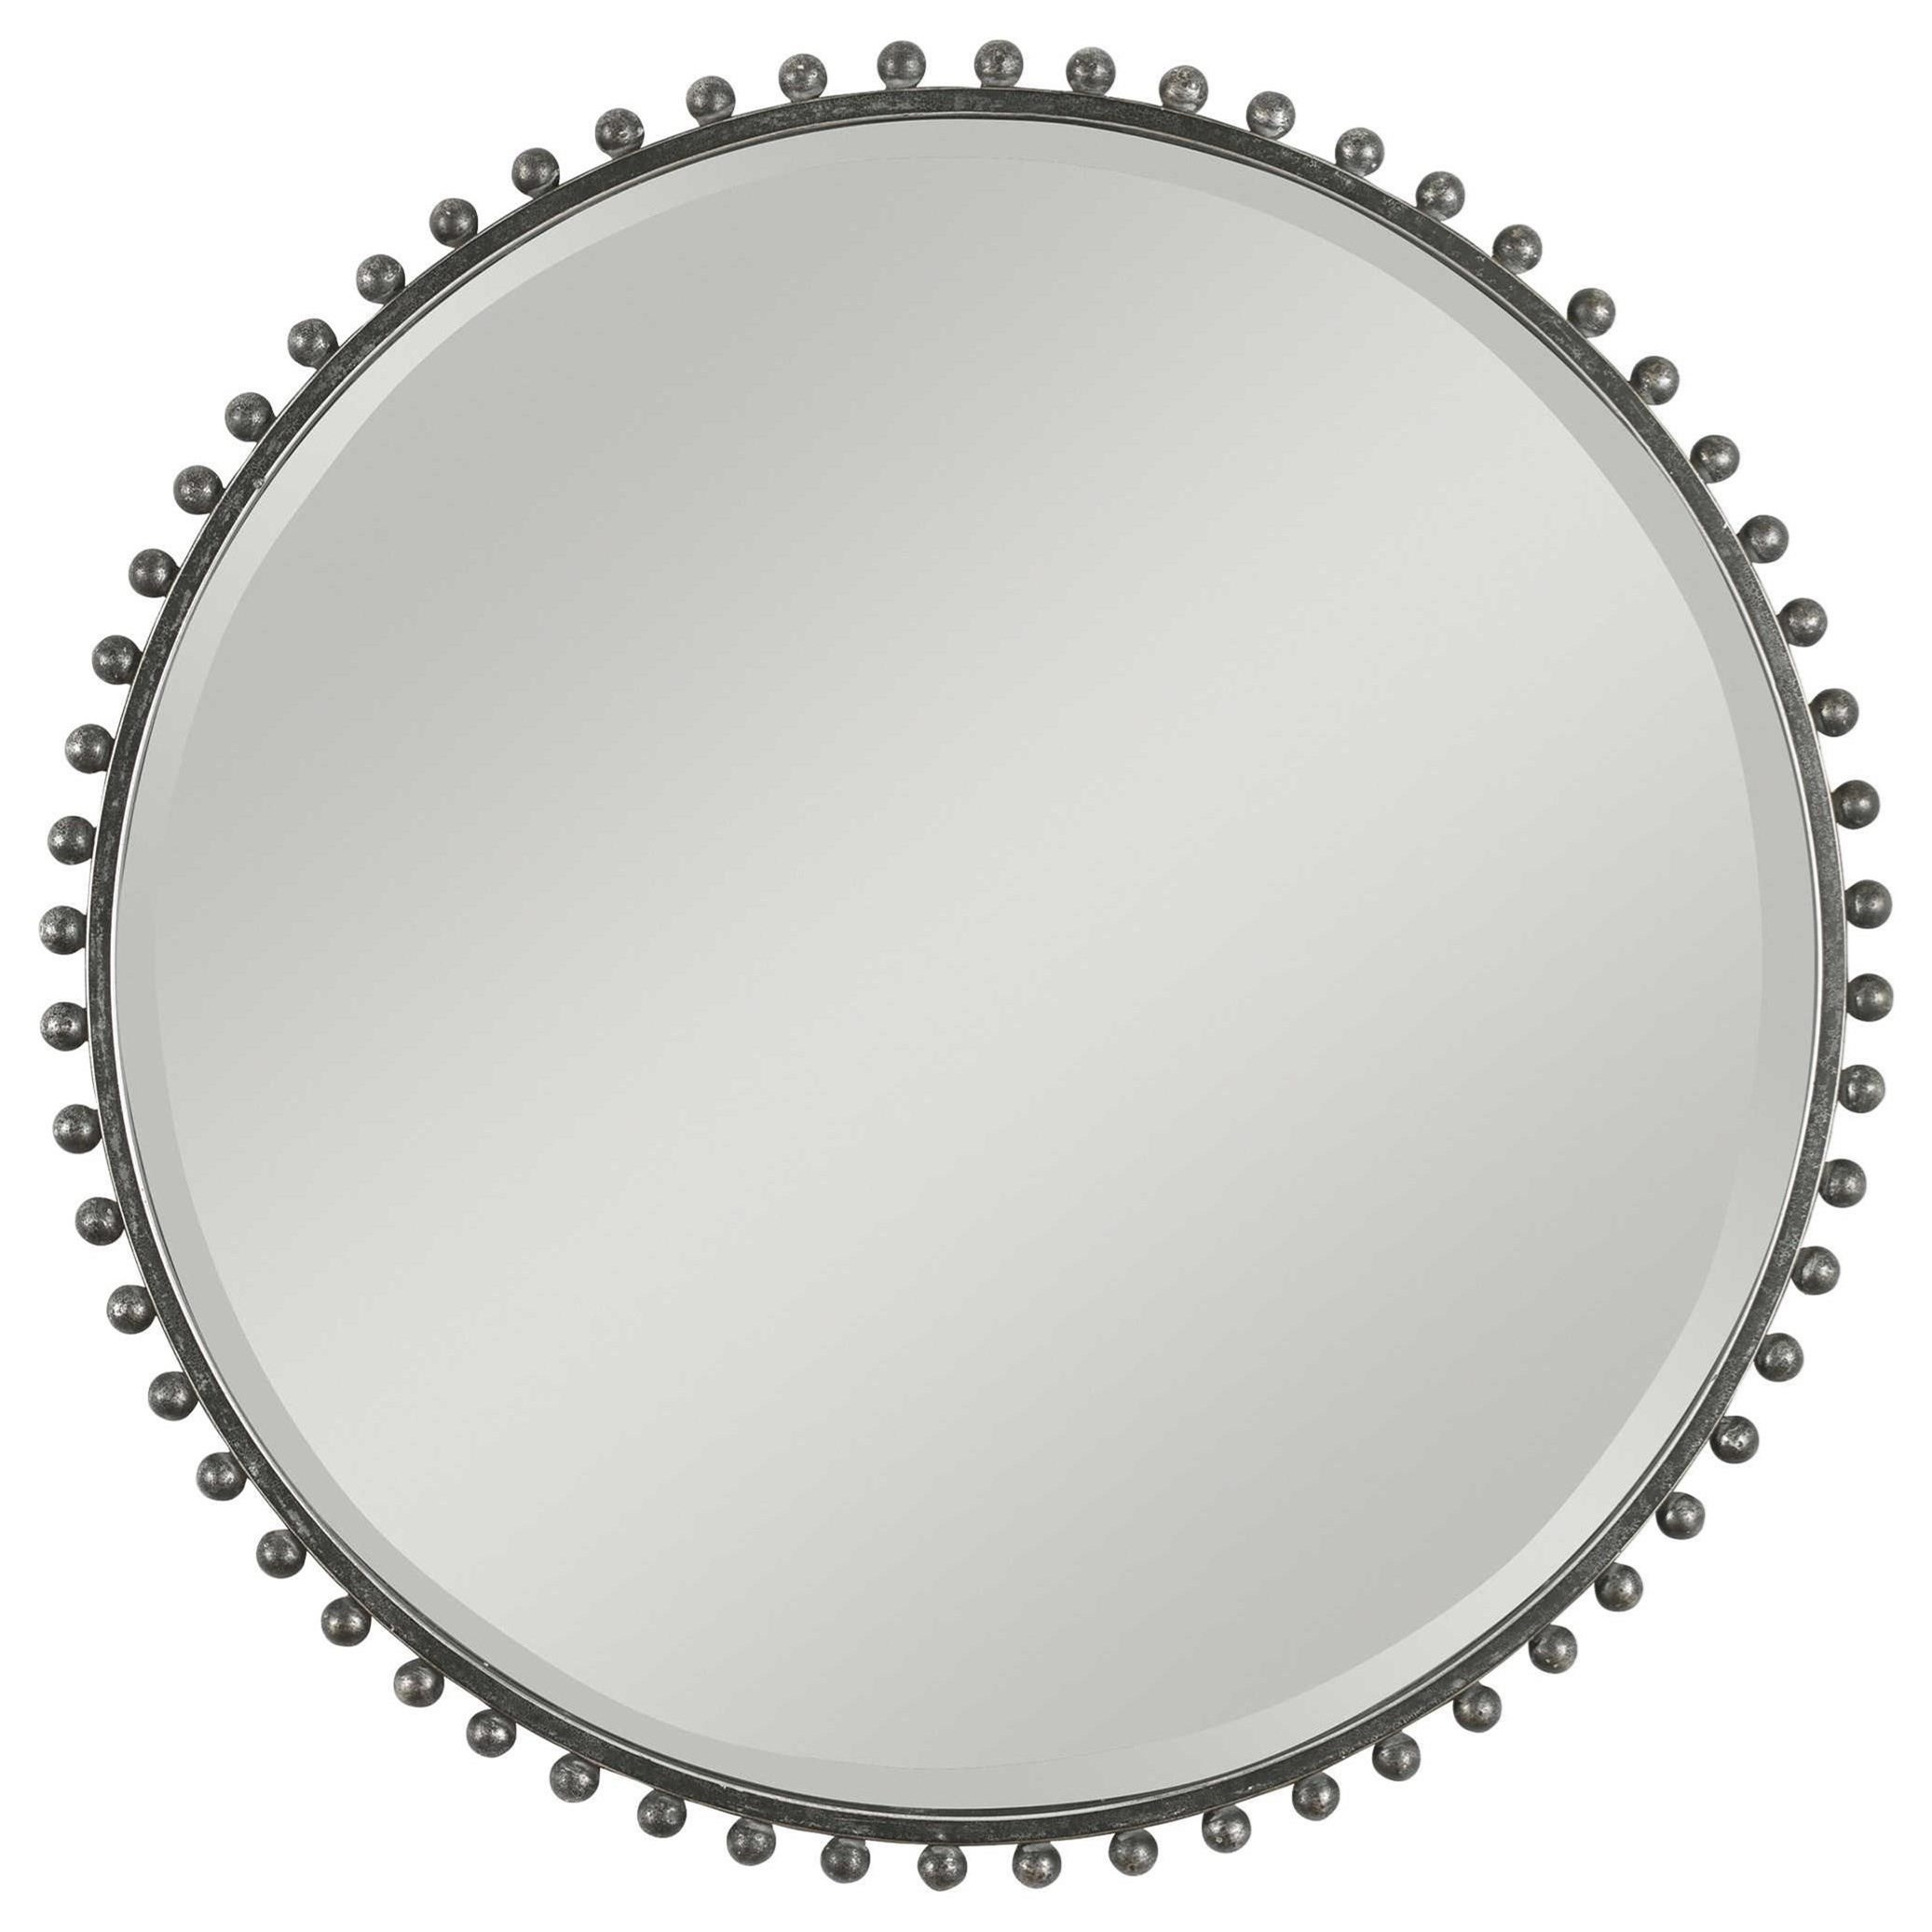 Mirrors - Round Taza Round Iron Mirror by Uttermost at Miller Waldrop Furniture and Decor